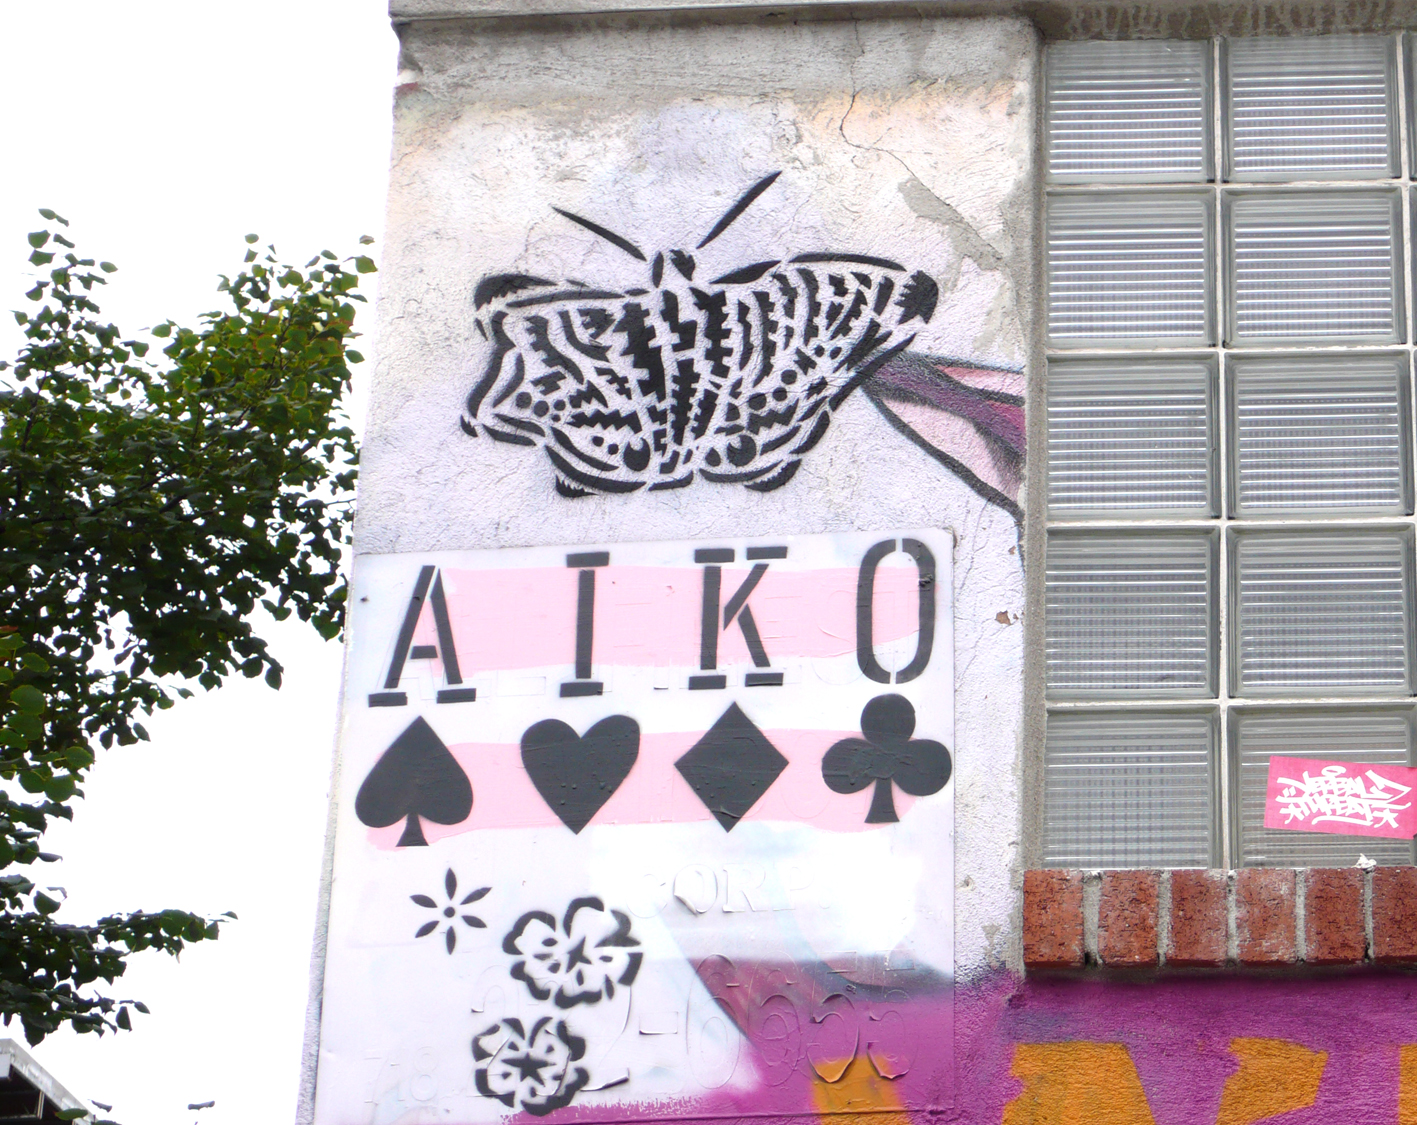 AIKO's biggest Stencil So Far: Power, Sex, and the Saxophone